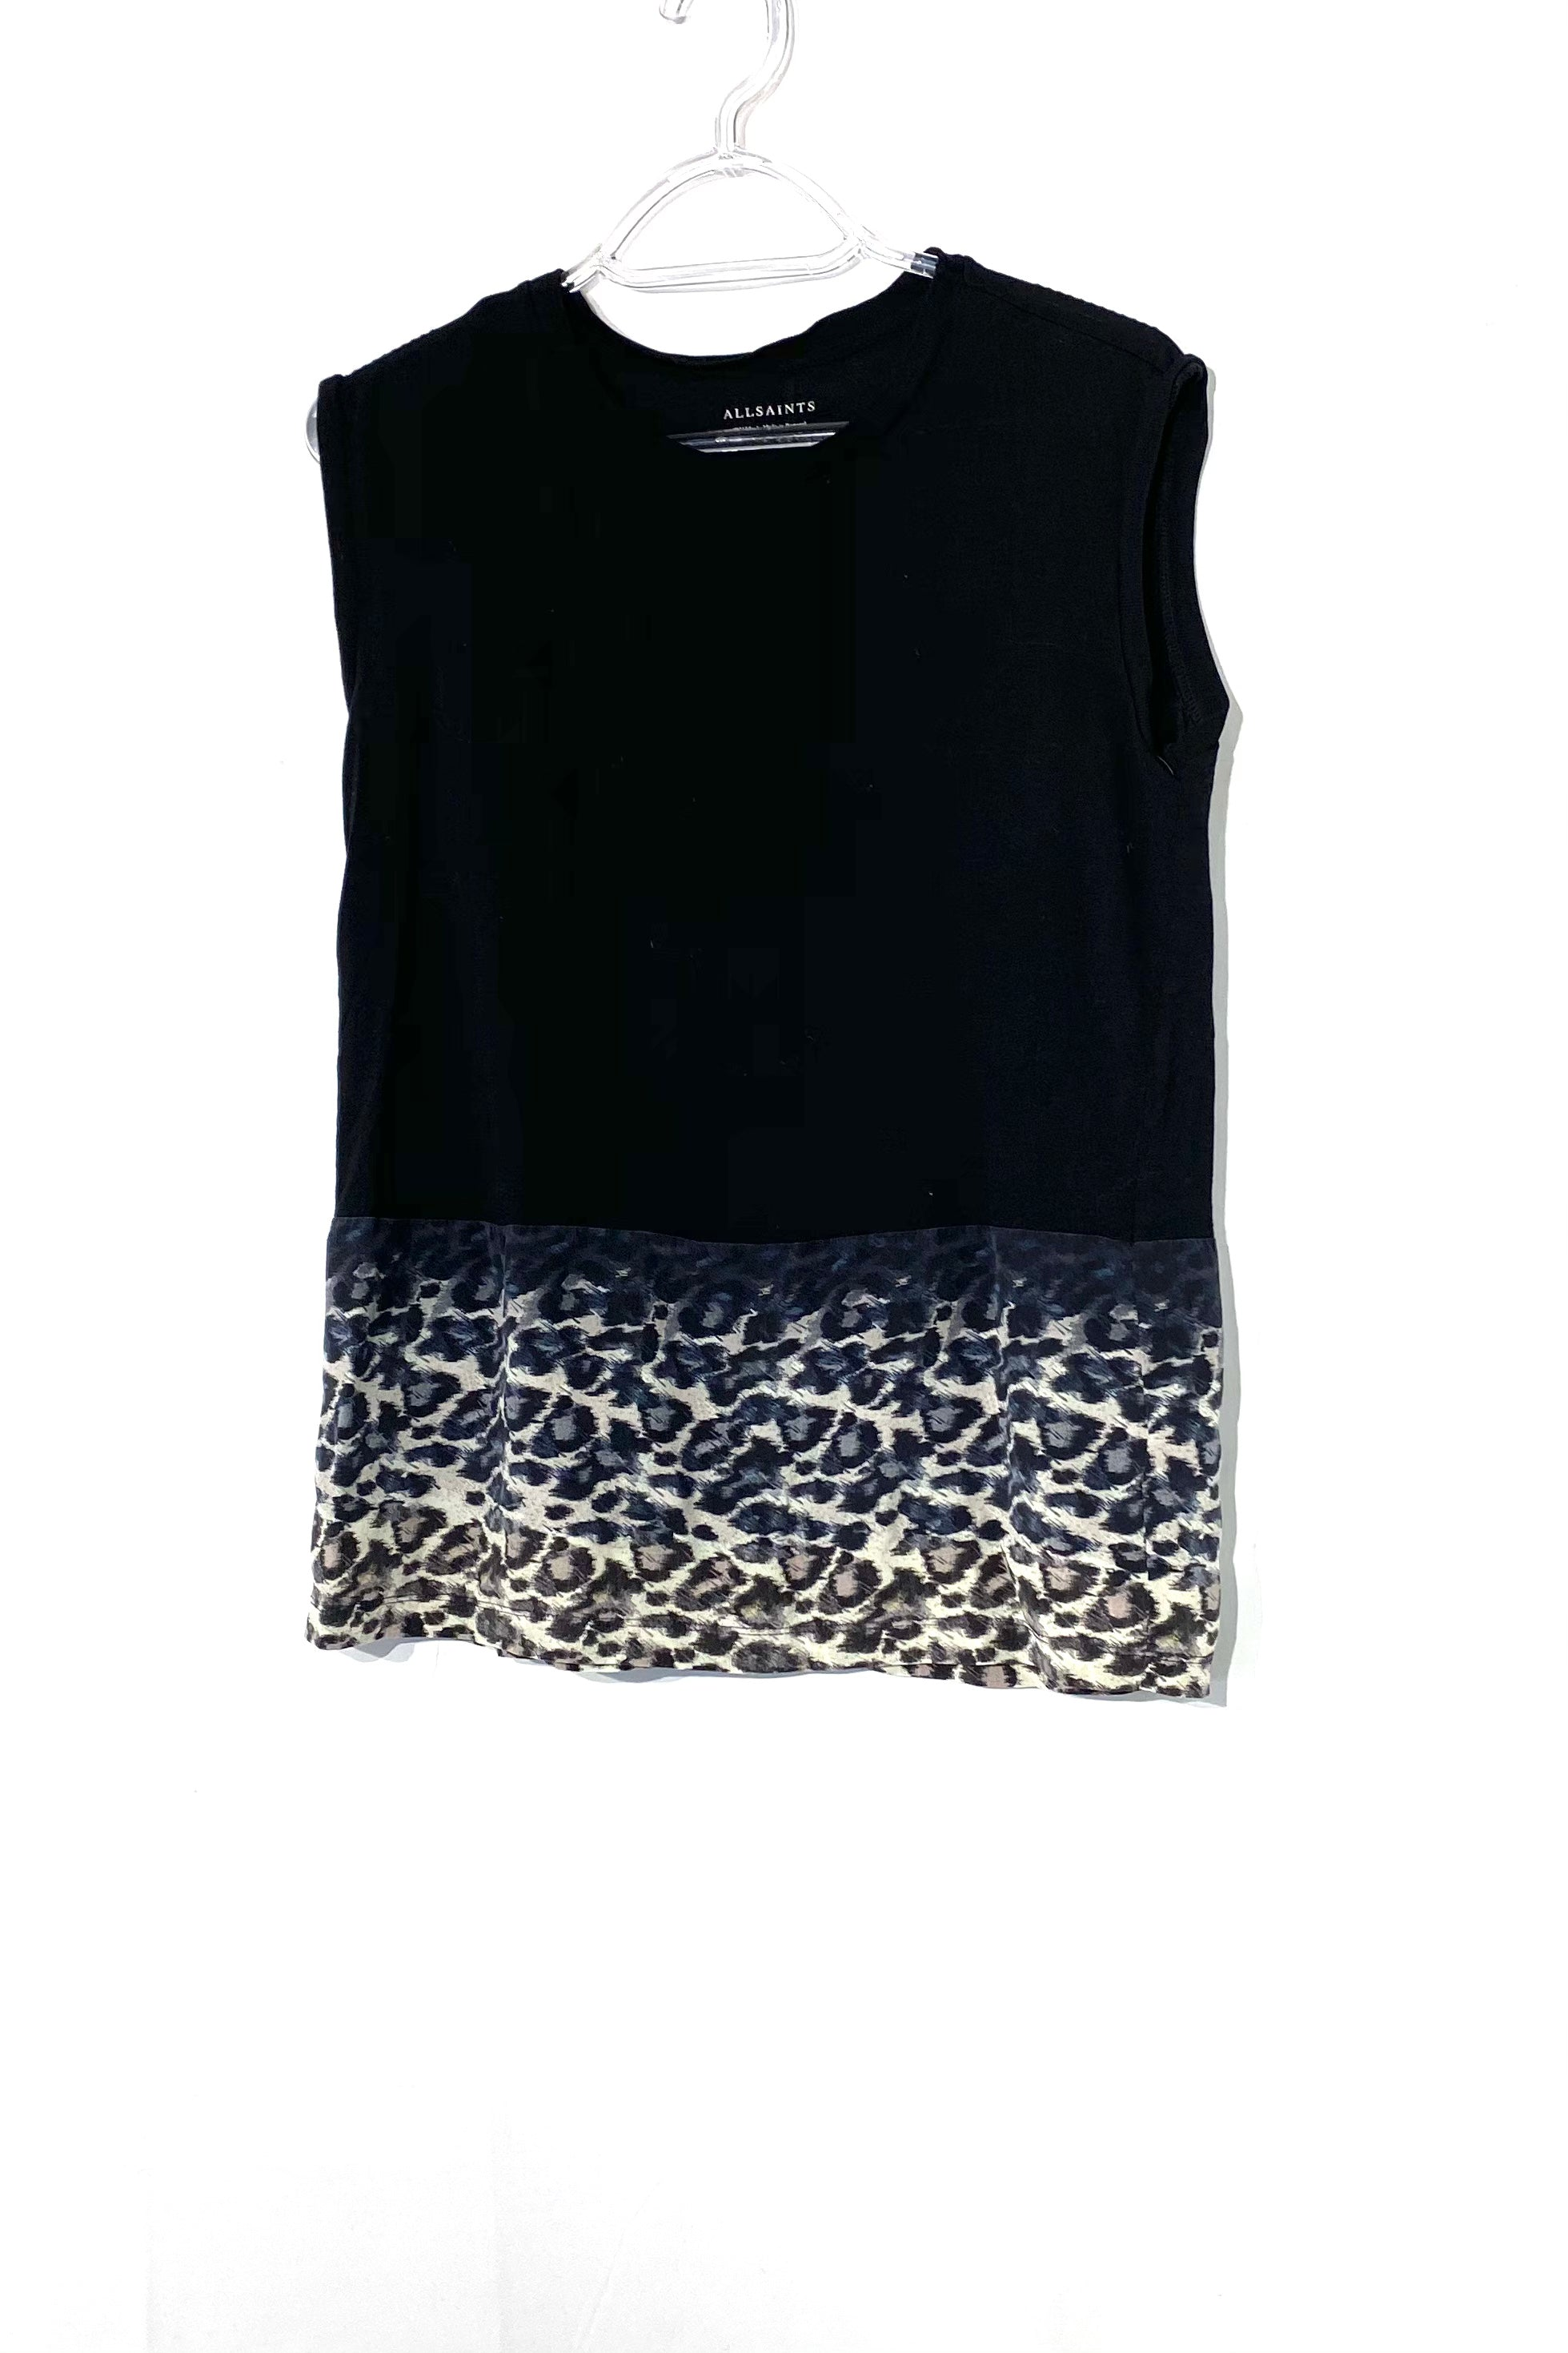 Primary Photo - BRAND: ALL SAINTS <BR>STYLE: TOP SLEEVELESS <BR>COLOR: ANIMAL PRINT <BR>SIZE: S <BR>SKU: 262-26275-71835